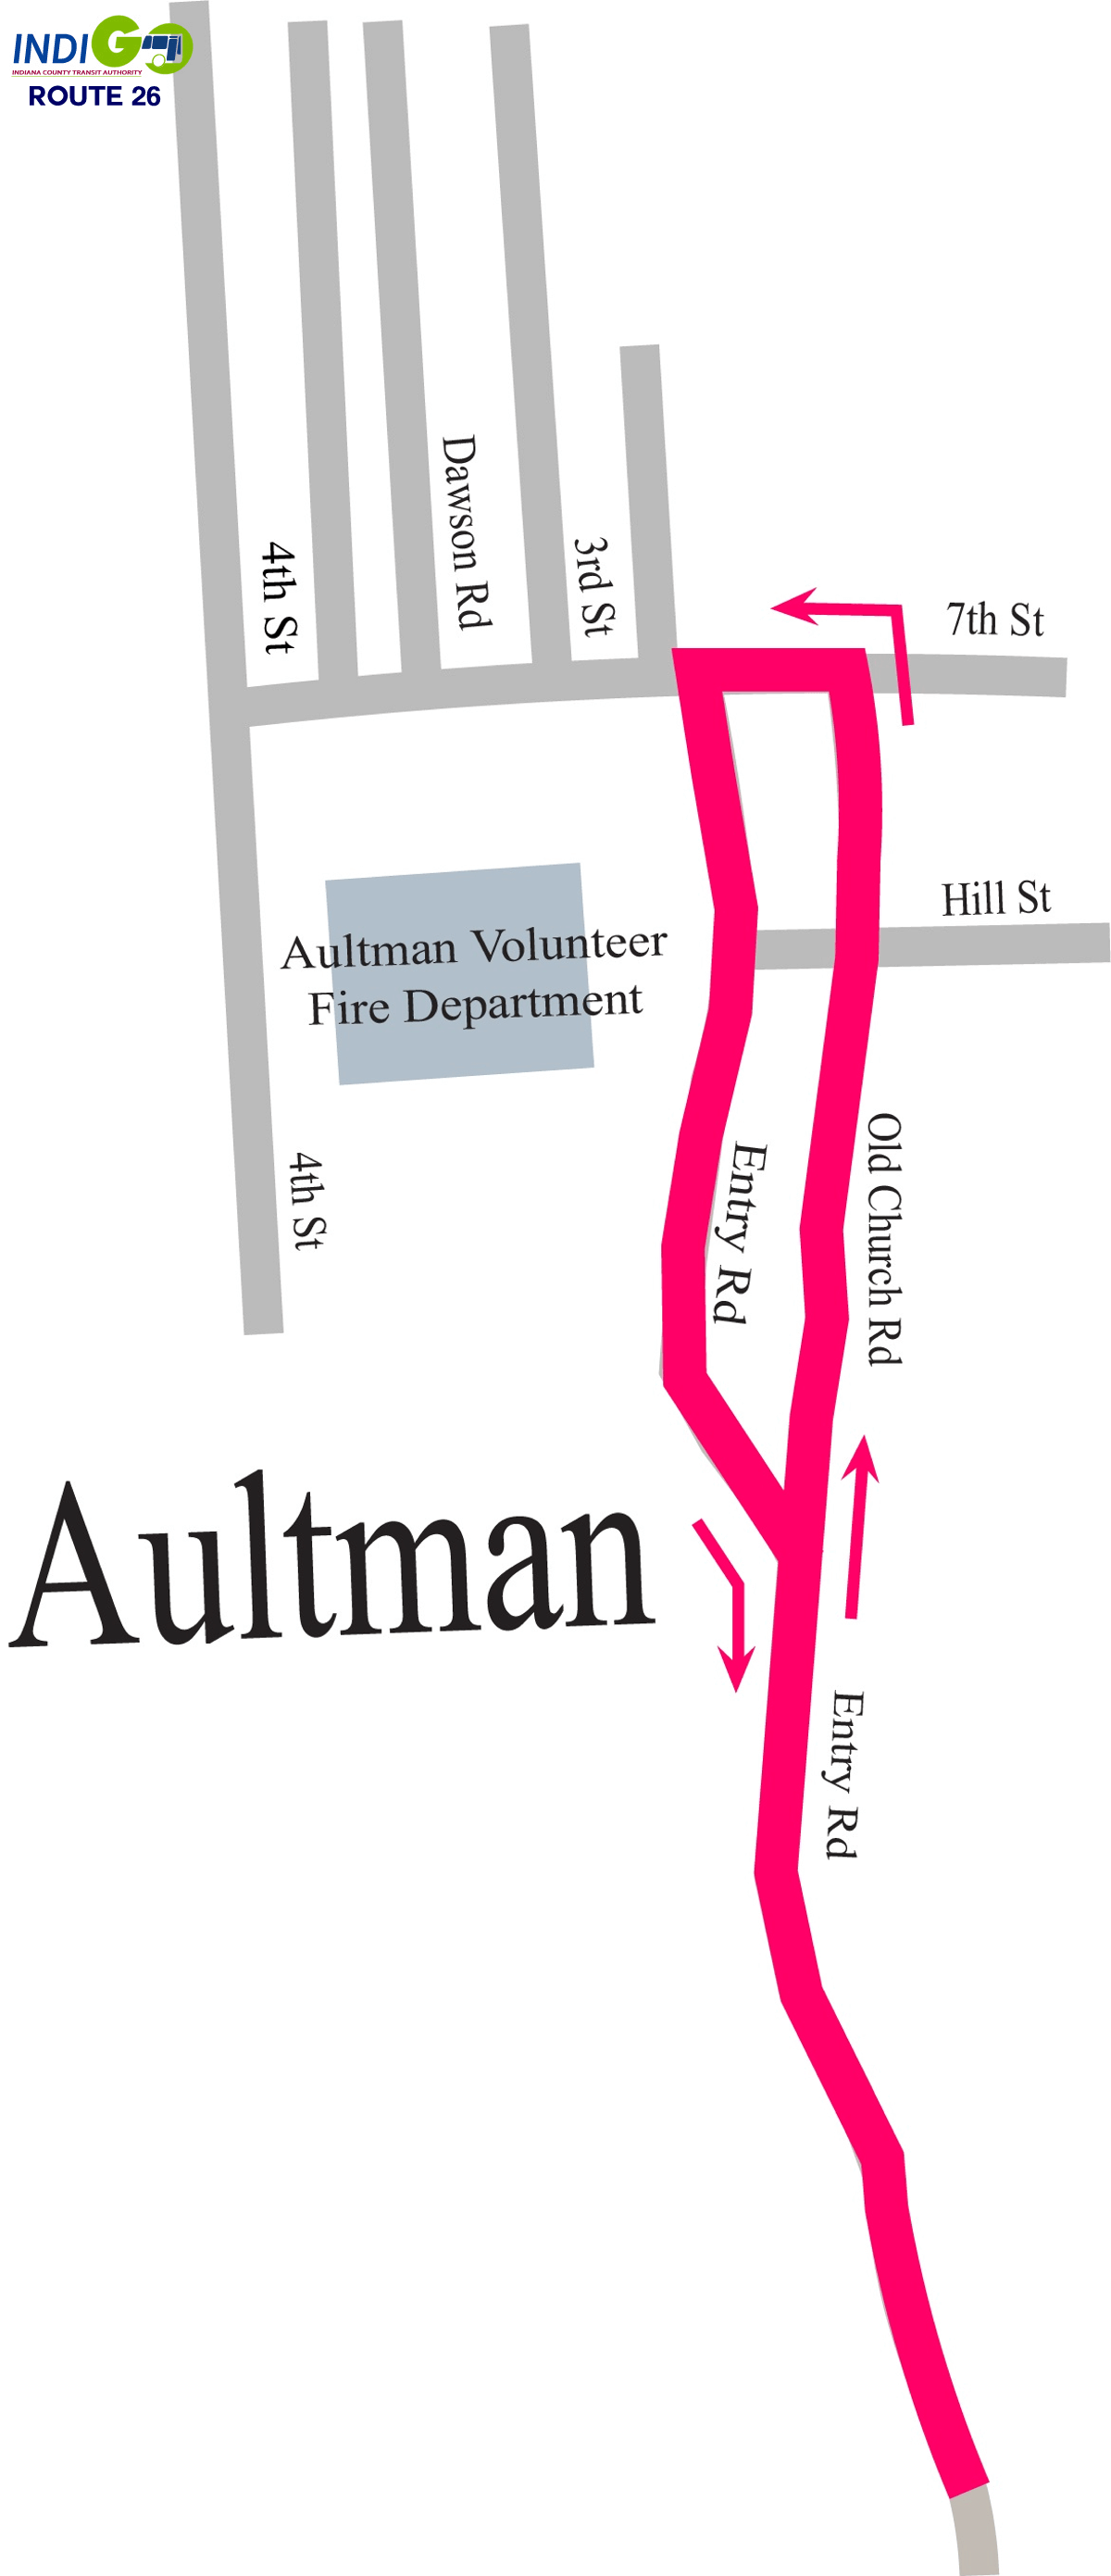 Map - Route 26 - Aultman Detail Map - Click on map to enlarge